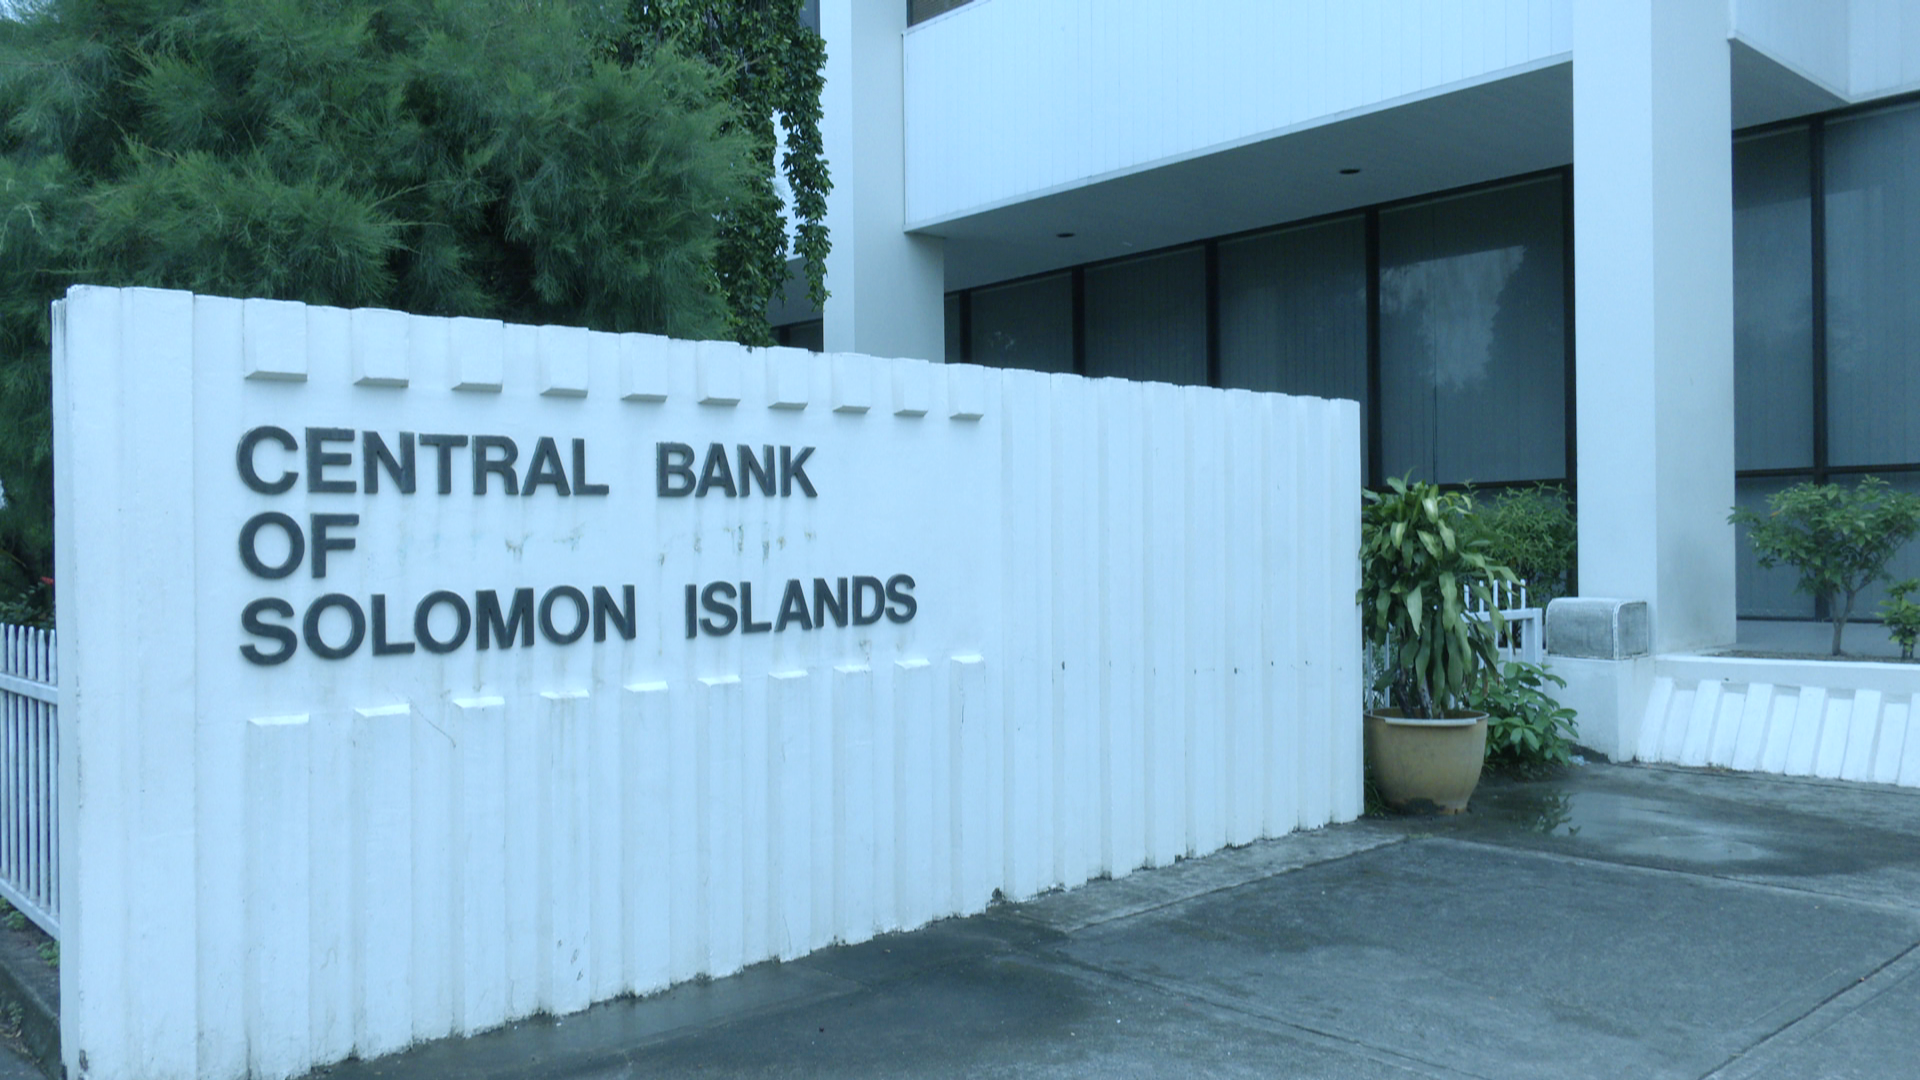 Solomon Islands economy projected to only fall by minus 3.9% not as an earlier projection